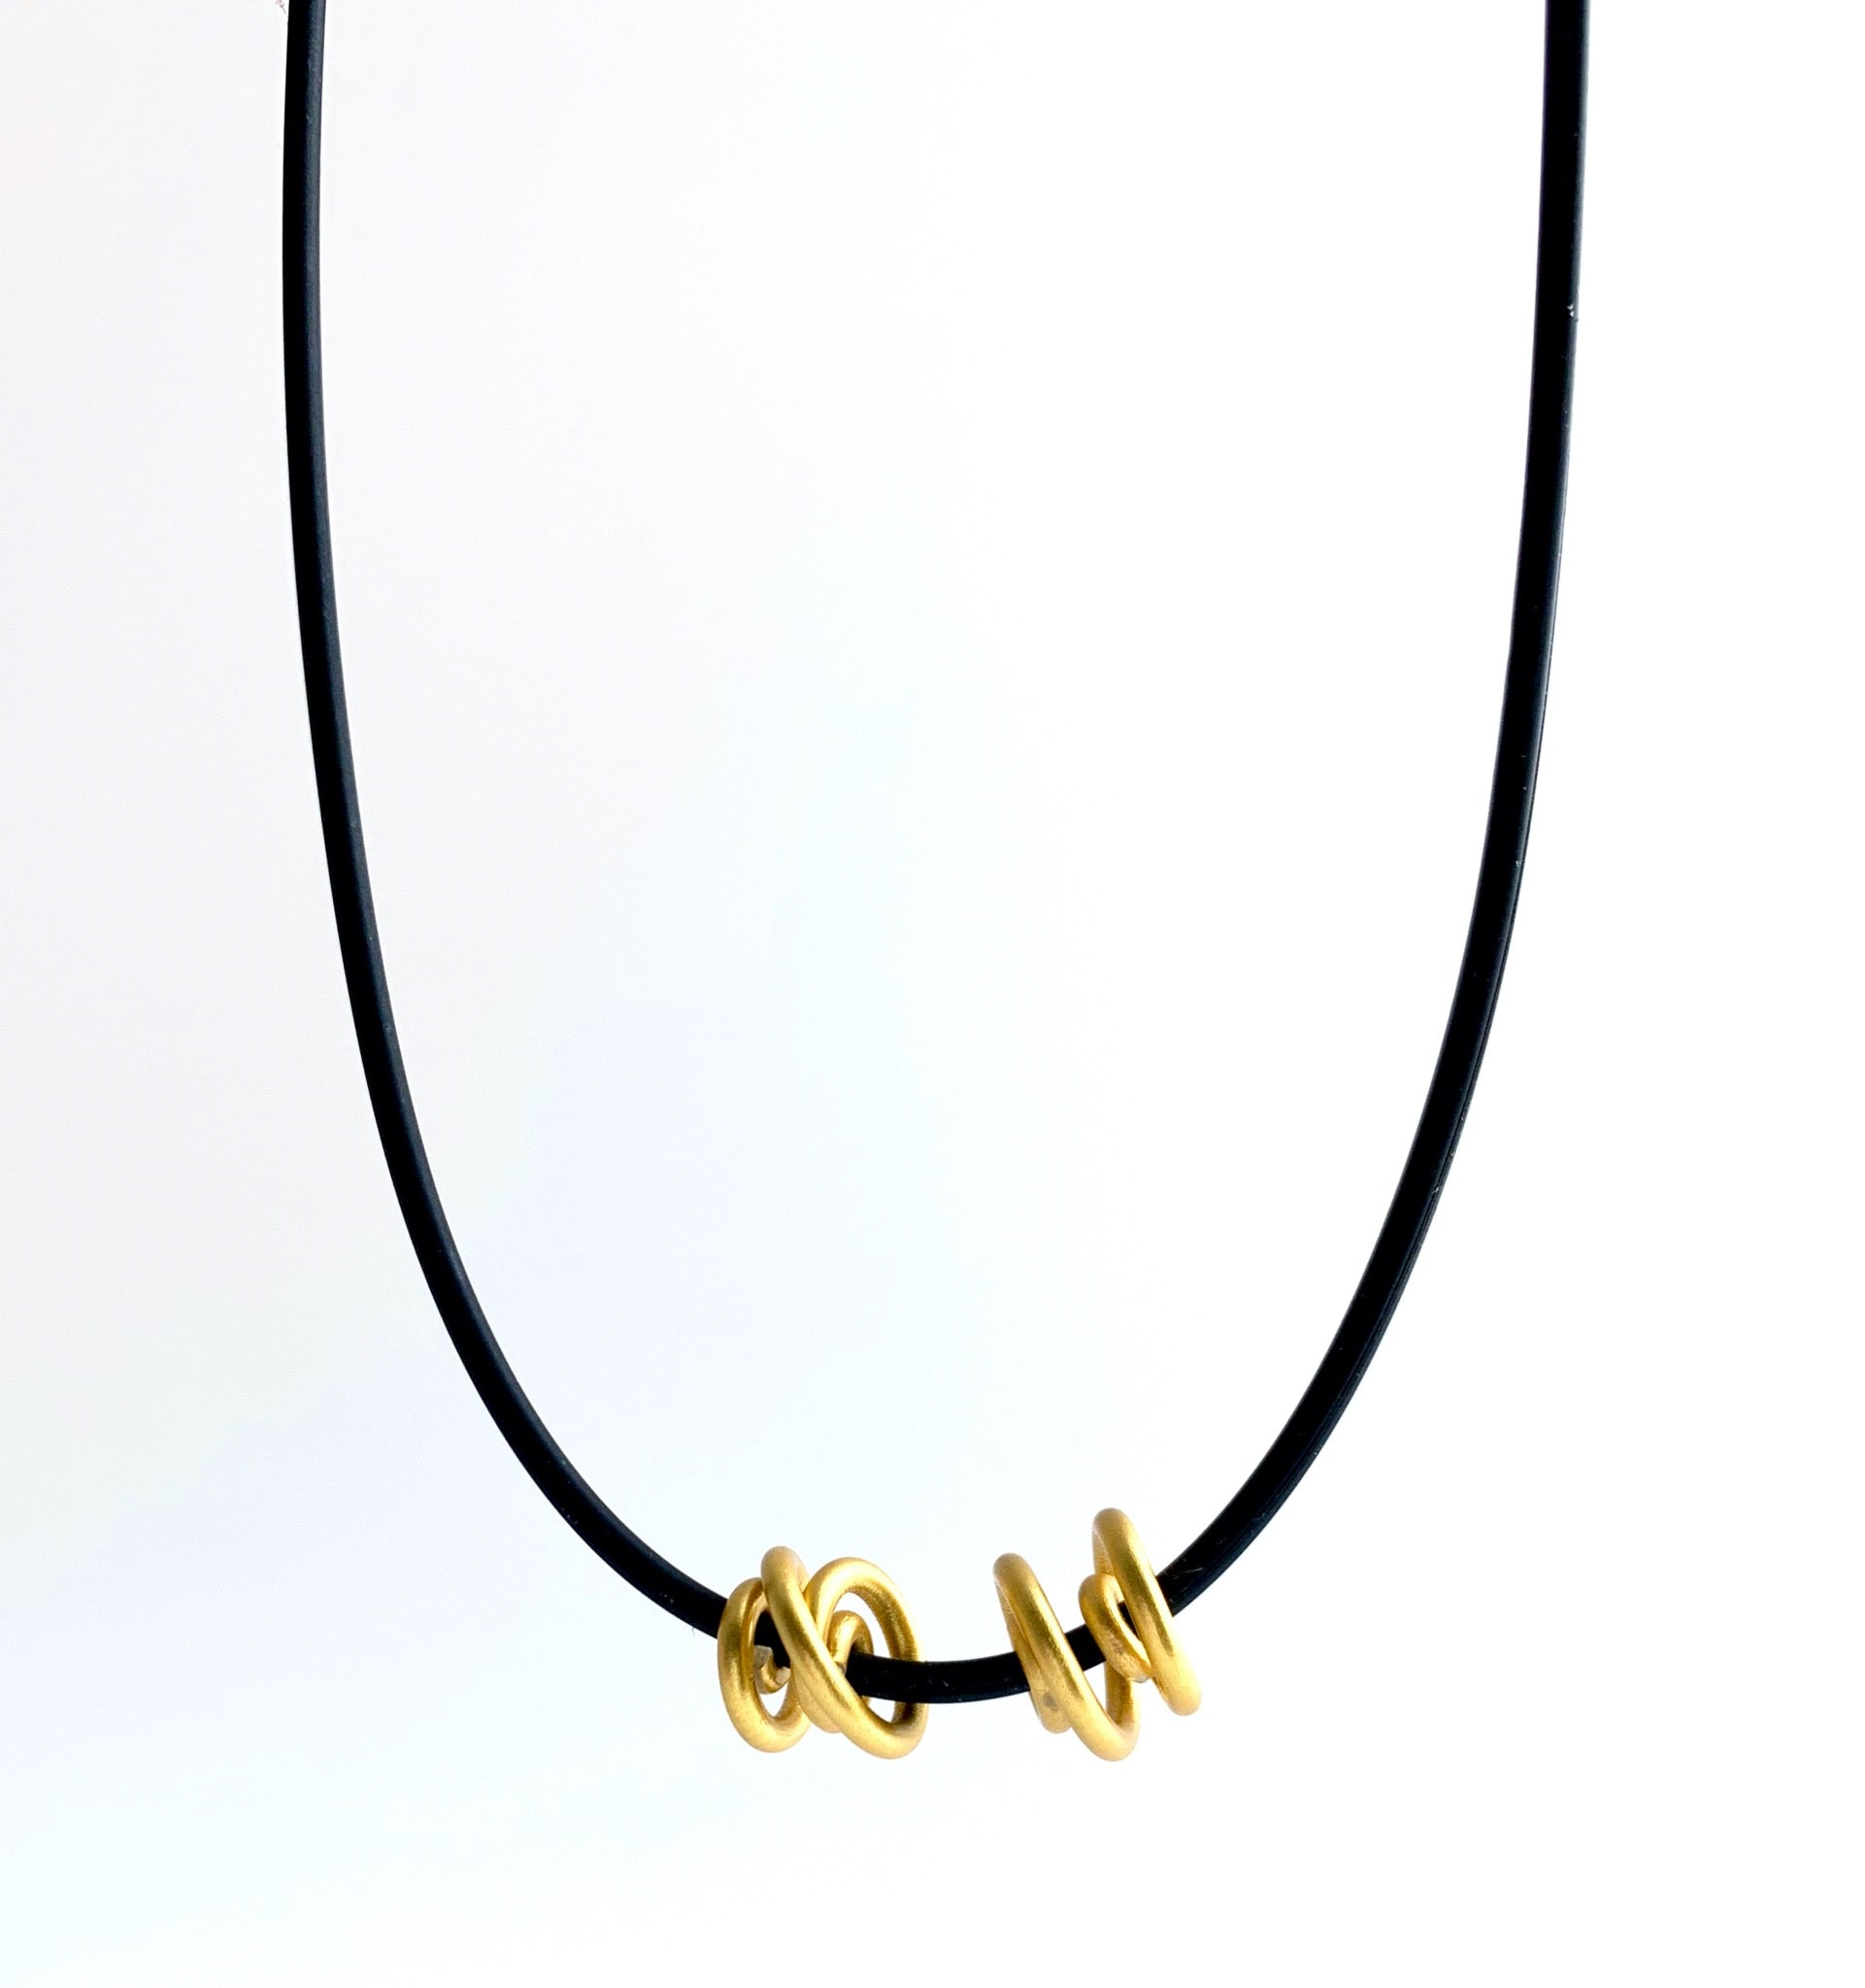 This Rubber Loopt necklace is in round gold. Made of aluminum wire and hangs on a rubber necklace with an interlocking closure. This piece comes in many variations.